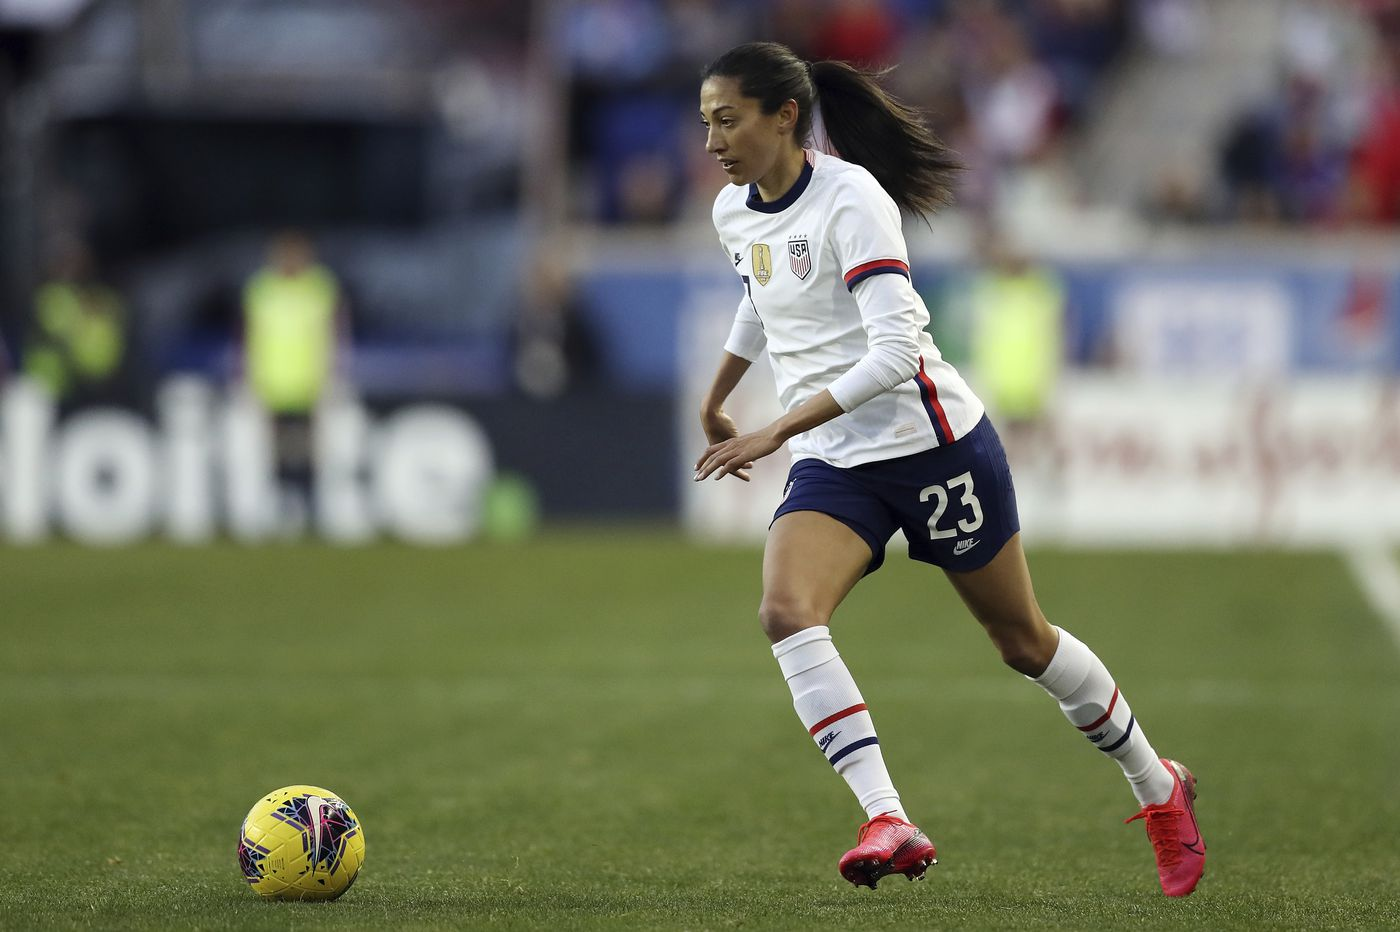 U.S. women's soccer confronts star players' embrace of England's fast-growing league